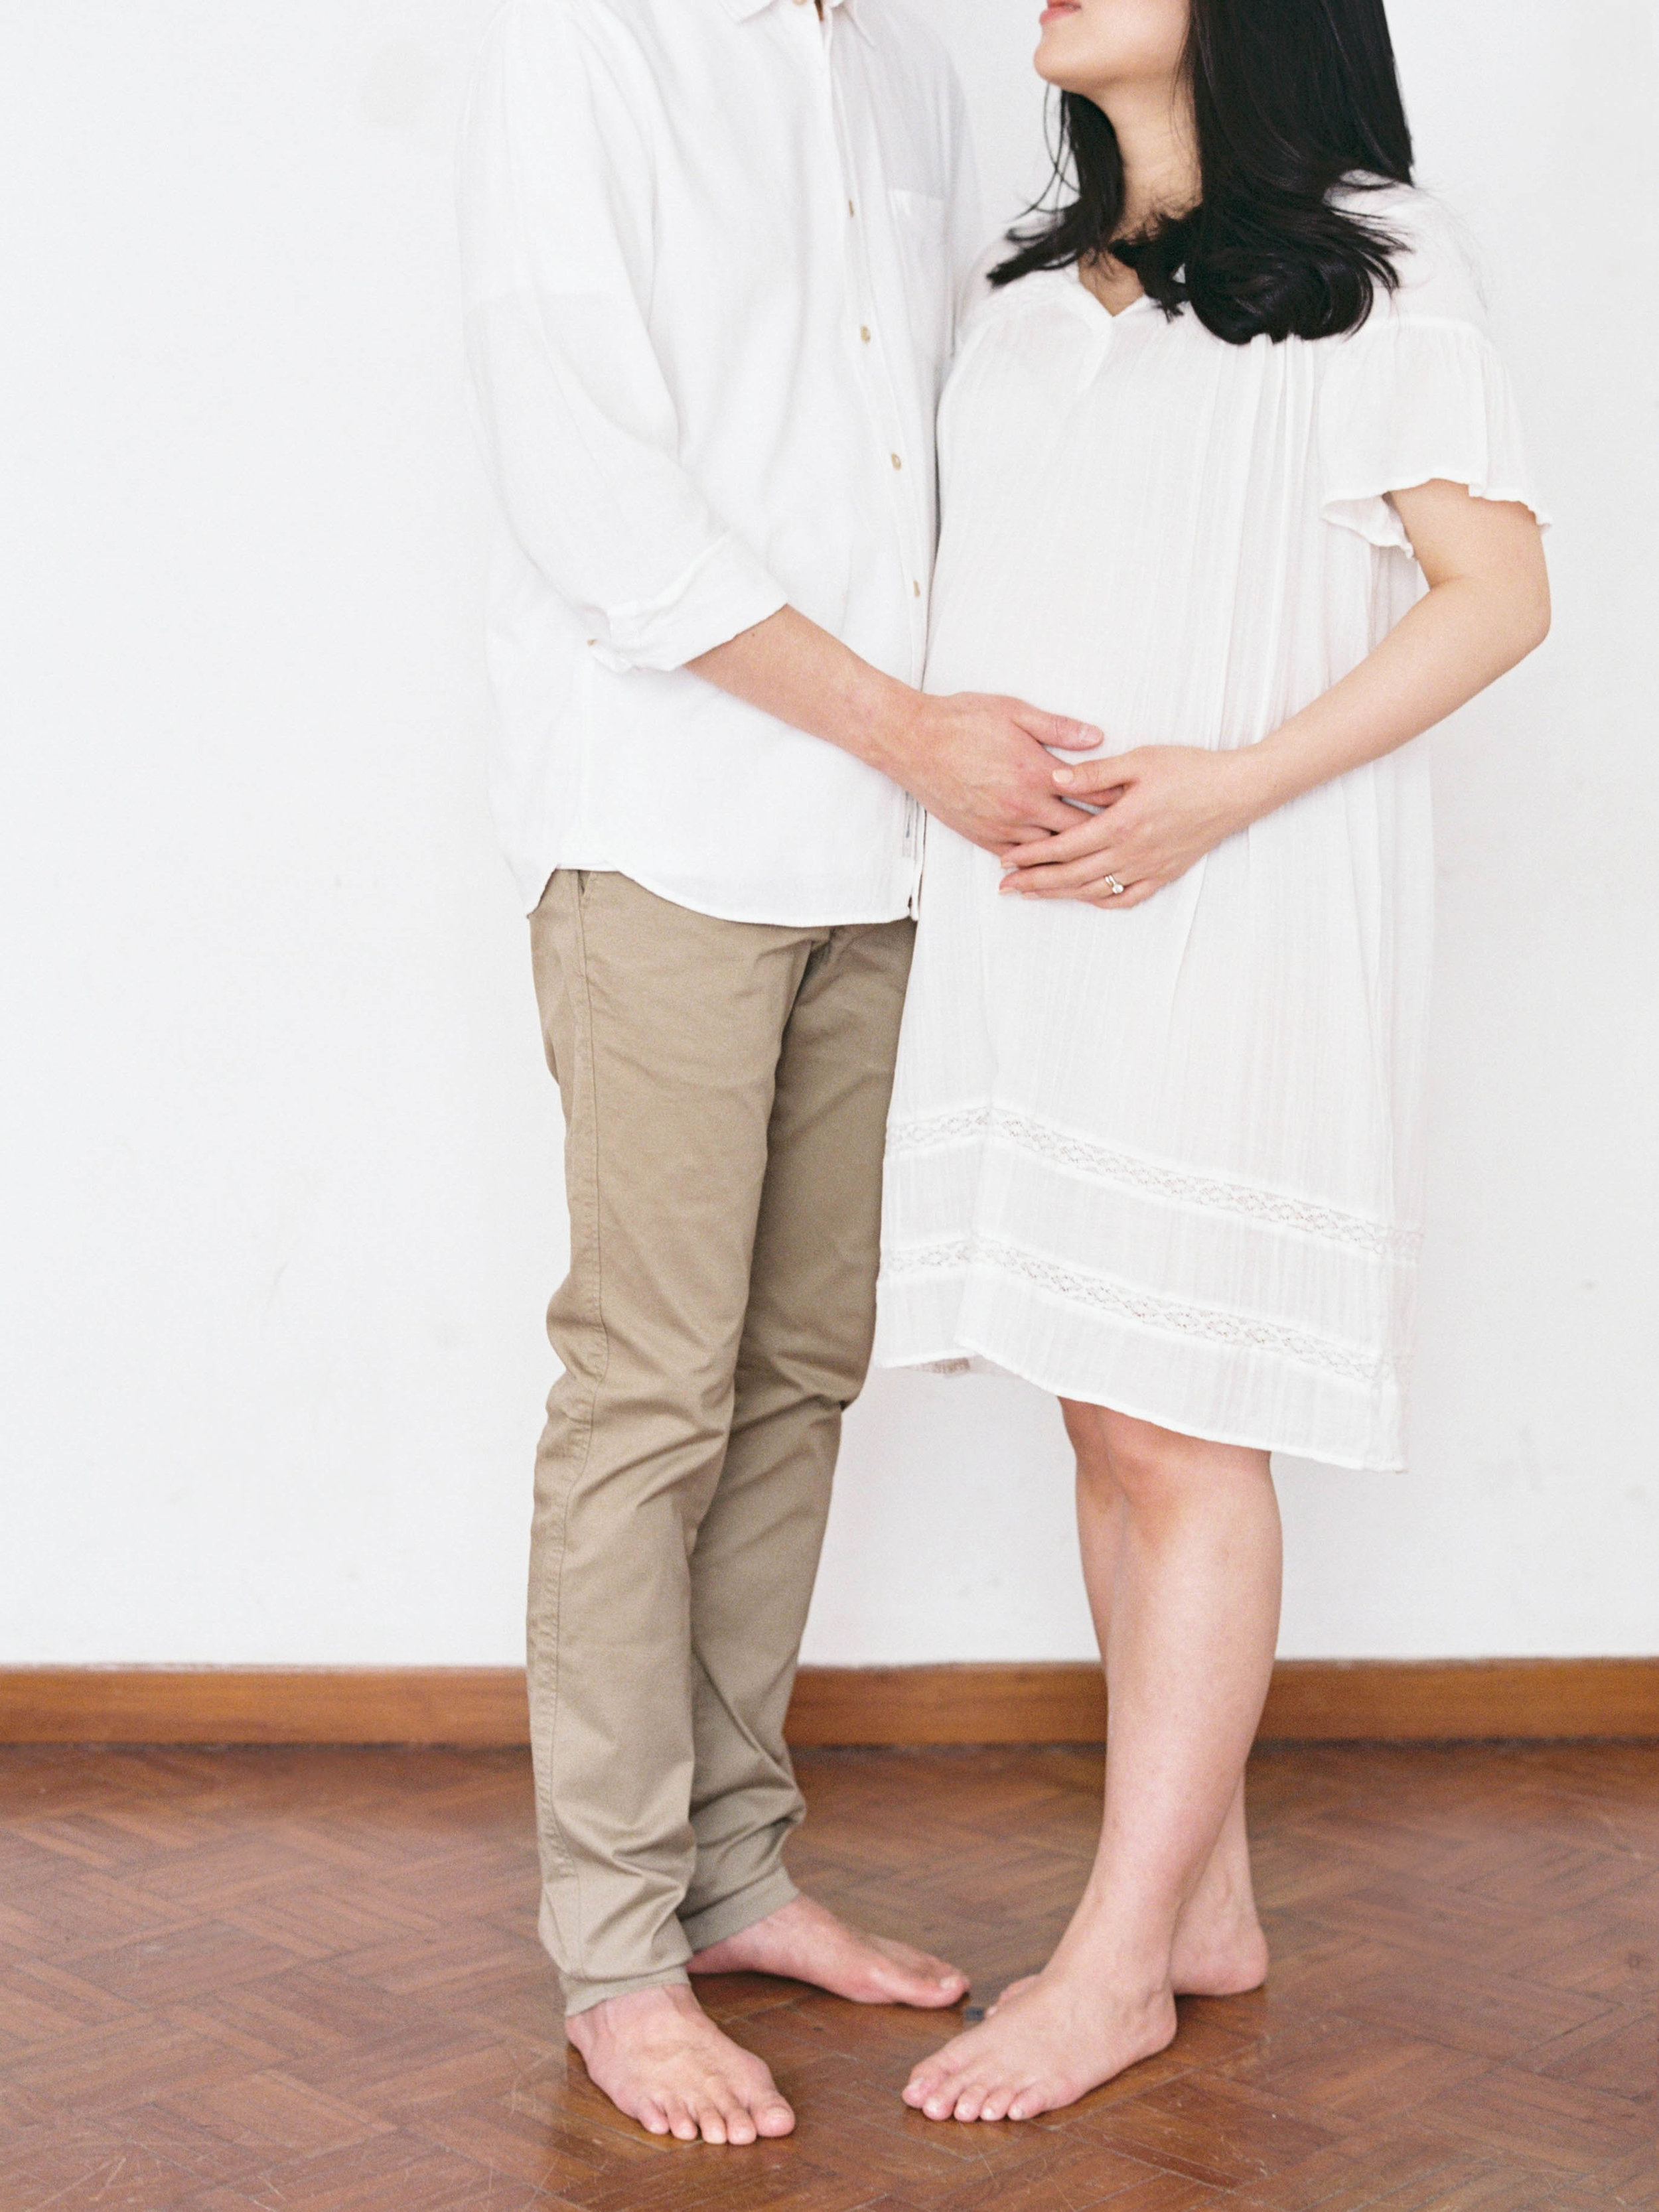 Gaby and Tim-Relaxed-Airy-Simple-Maternity Portrait Photoshoot-At Home-Jakarta-Studio June-Film Photography & Styling-37.jpg